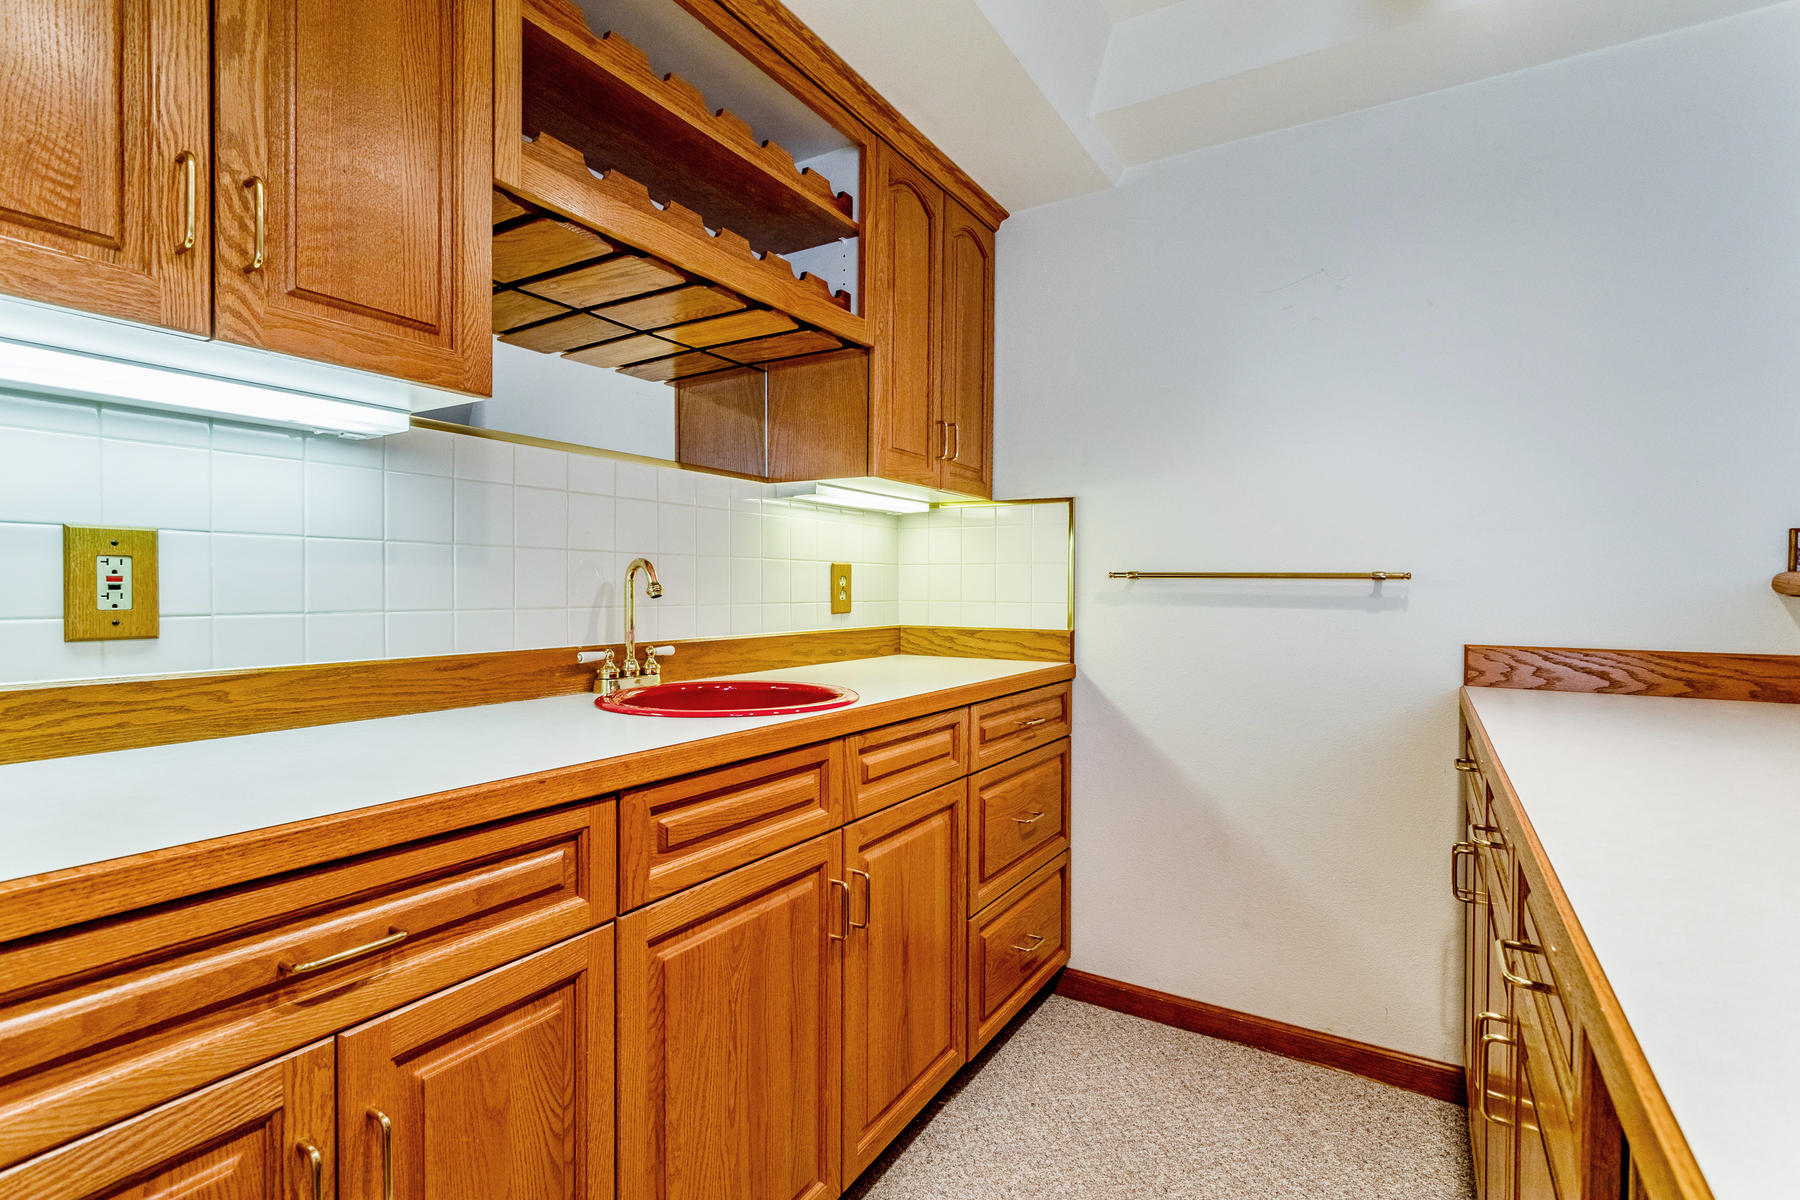 Great Storage Cabinetry in Wet Bar Area